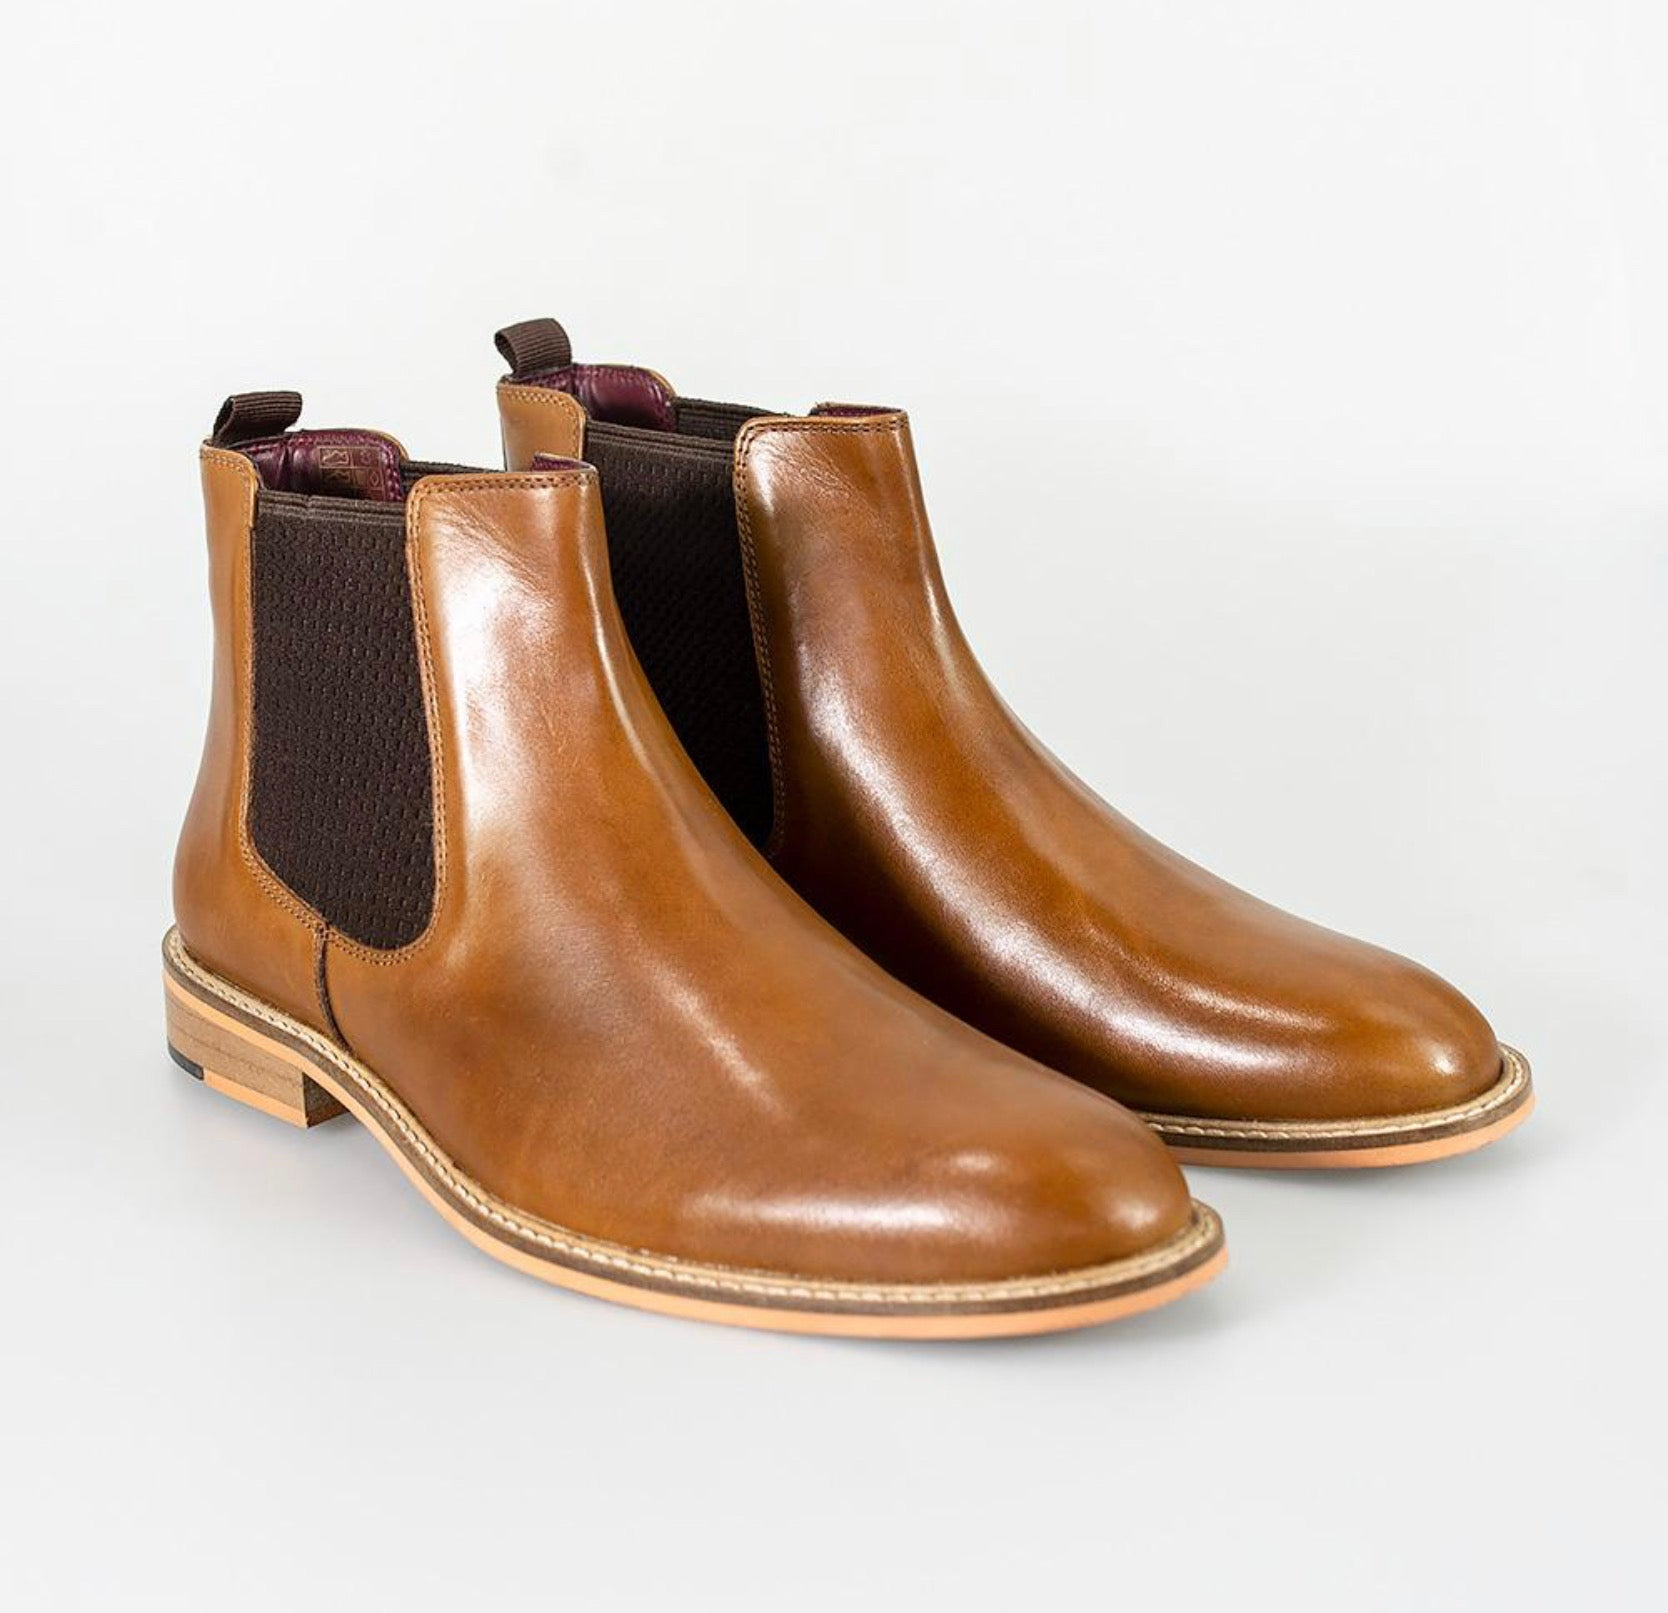 Cavani Watson Dealer Boot - Tan - jjdonnelly